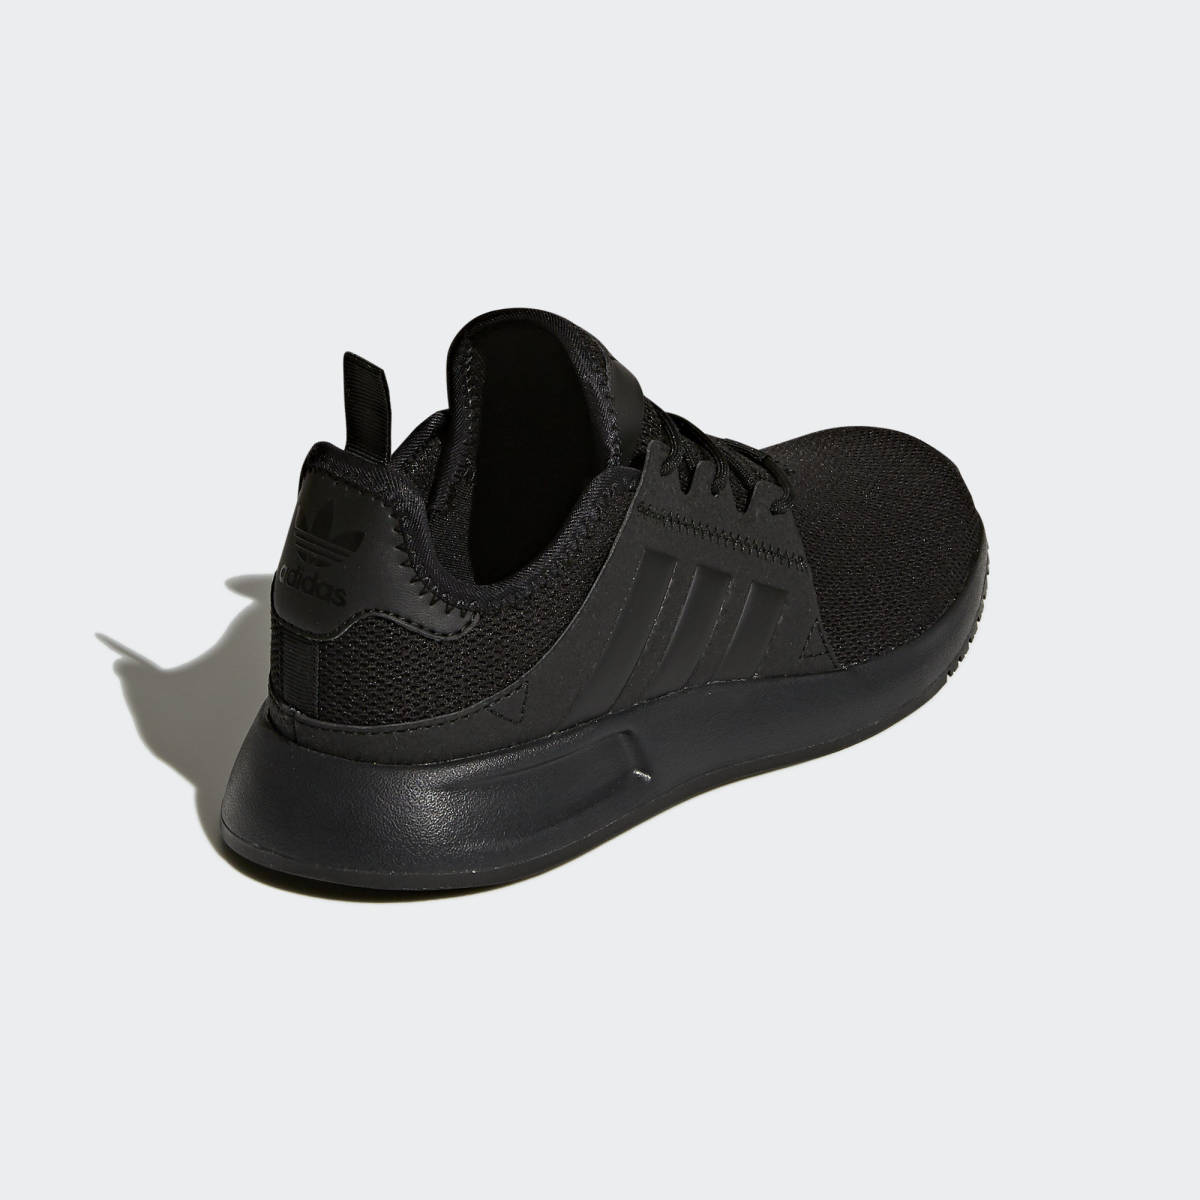 in PLR adidas BY9879everysize Originals schwarz X qzGMpSVU